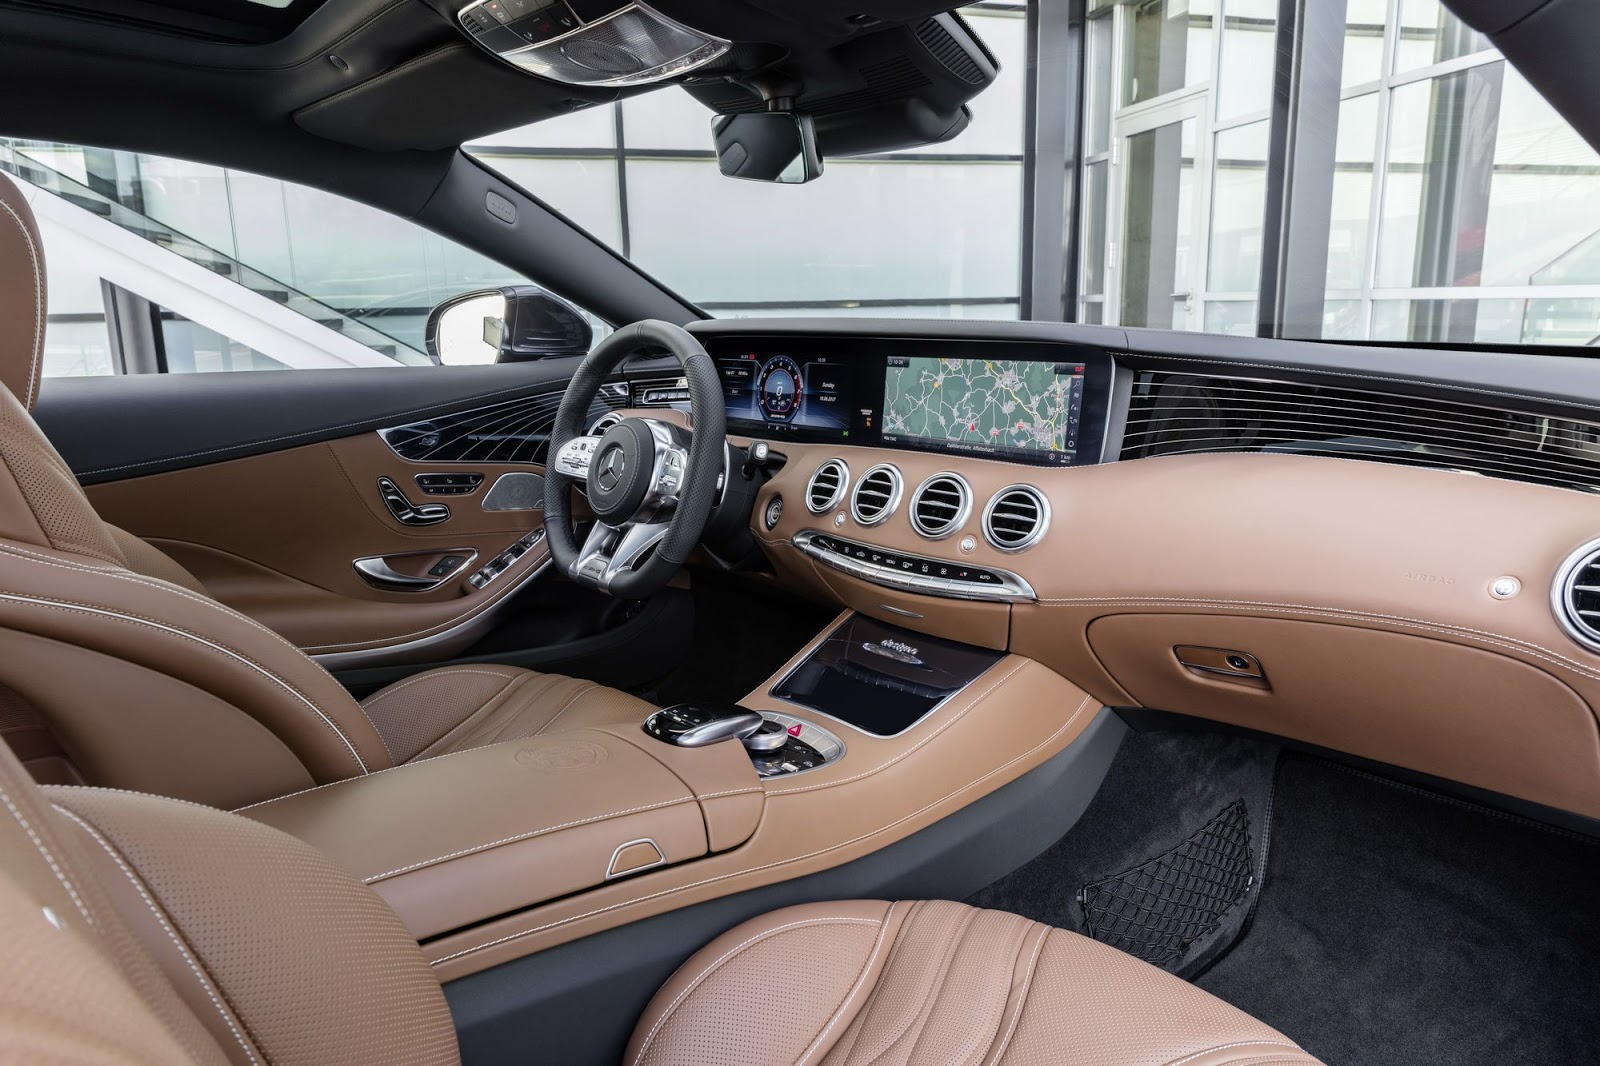 Mercedes-AMG S 65 Coupé, 2017. Interieur: designo Leder Exklusiv Nappa AMG sattelbraun/schwarz. Exterieur: anthrazitblau metallic;Kraftstoffverbrauch kombiniert: 11,9 l/100 km; CO2-Emissionen kombiniert: 279 g/km*